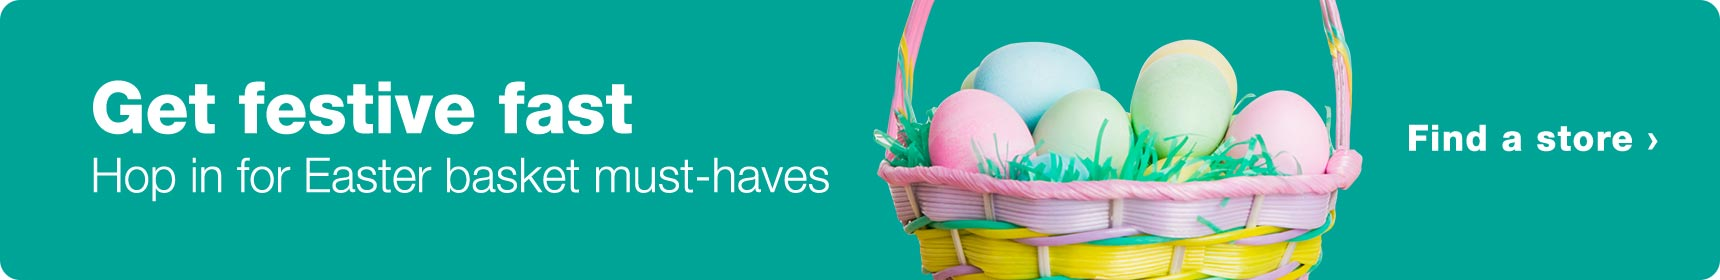 Get festive fast. Hop in for Easter basket must-haves. Find a store.